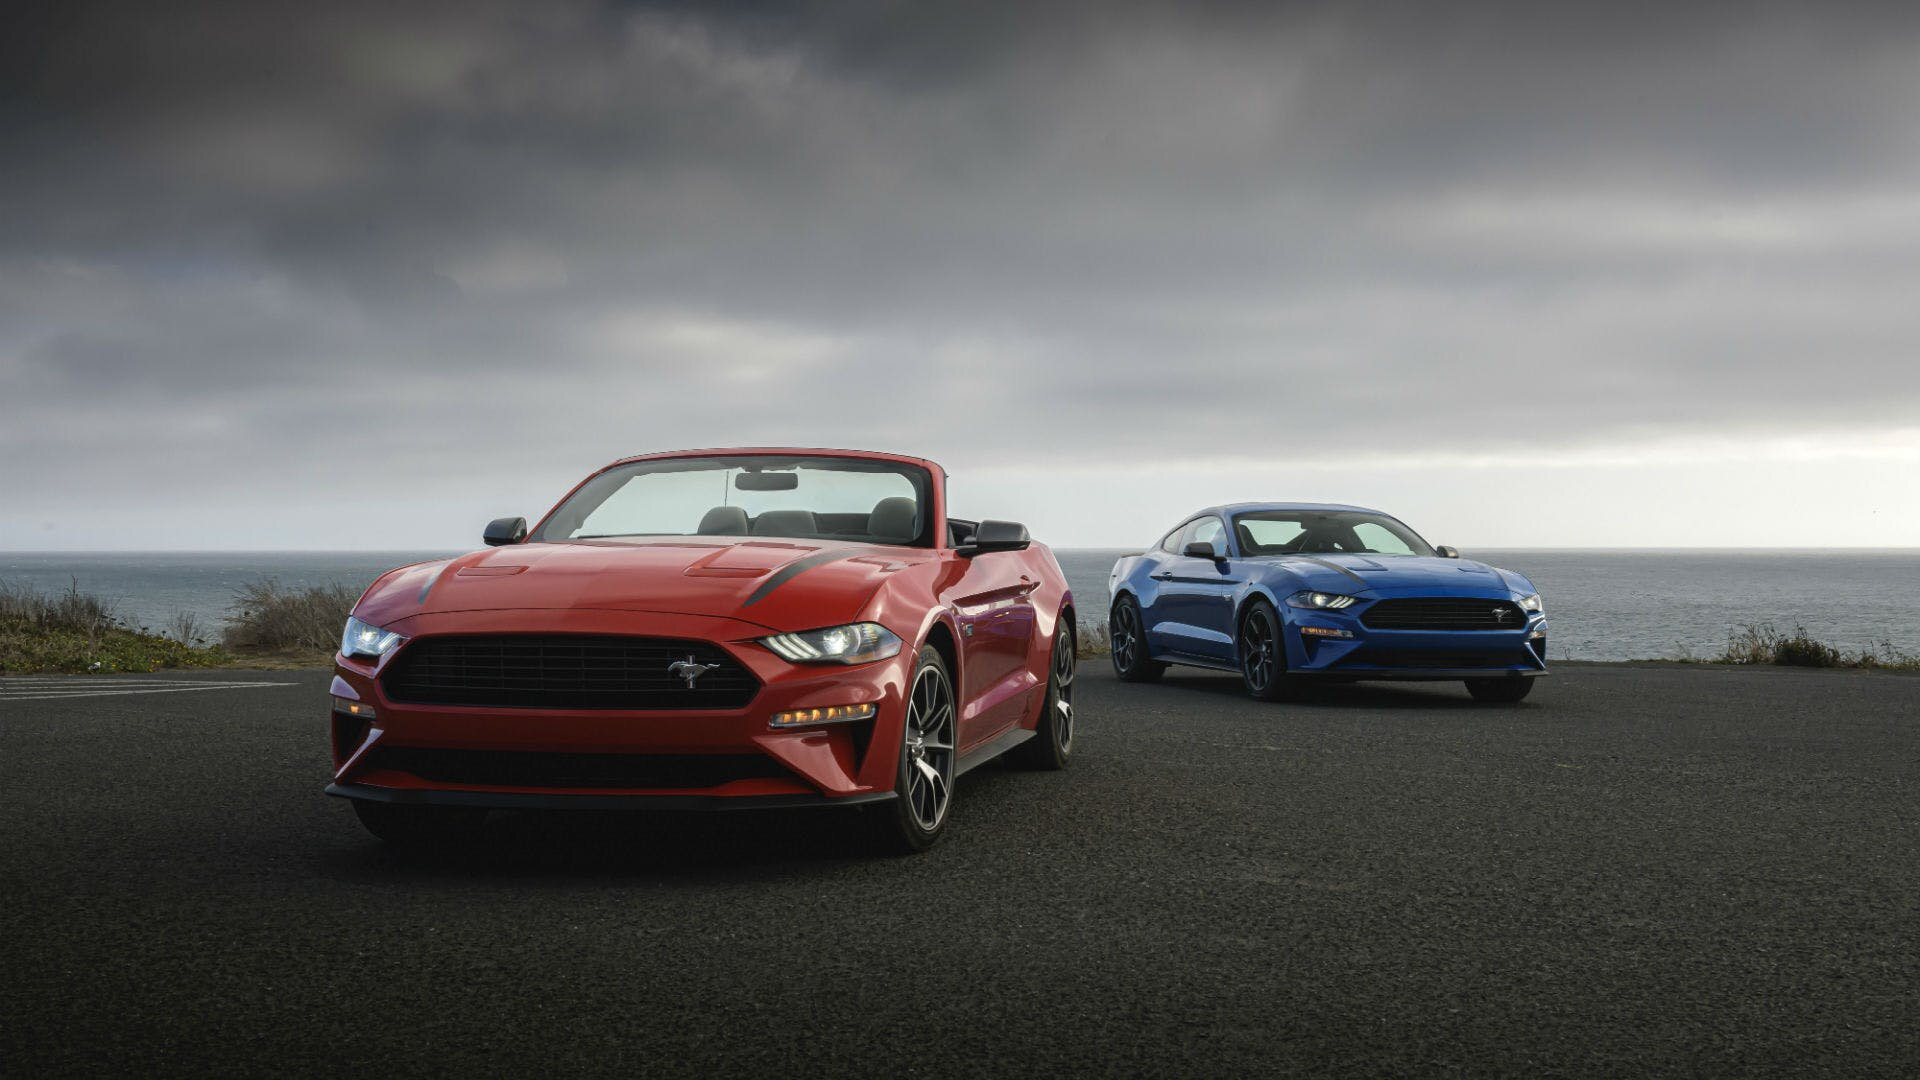 2020-ford-mustang-ecoboost-high-performance-pack-review-the-drive.jpg